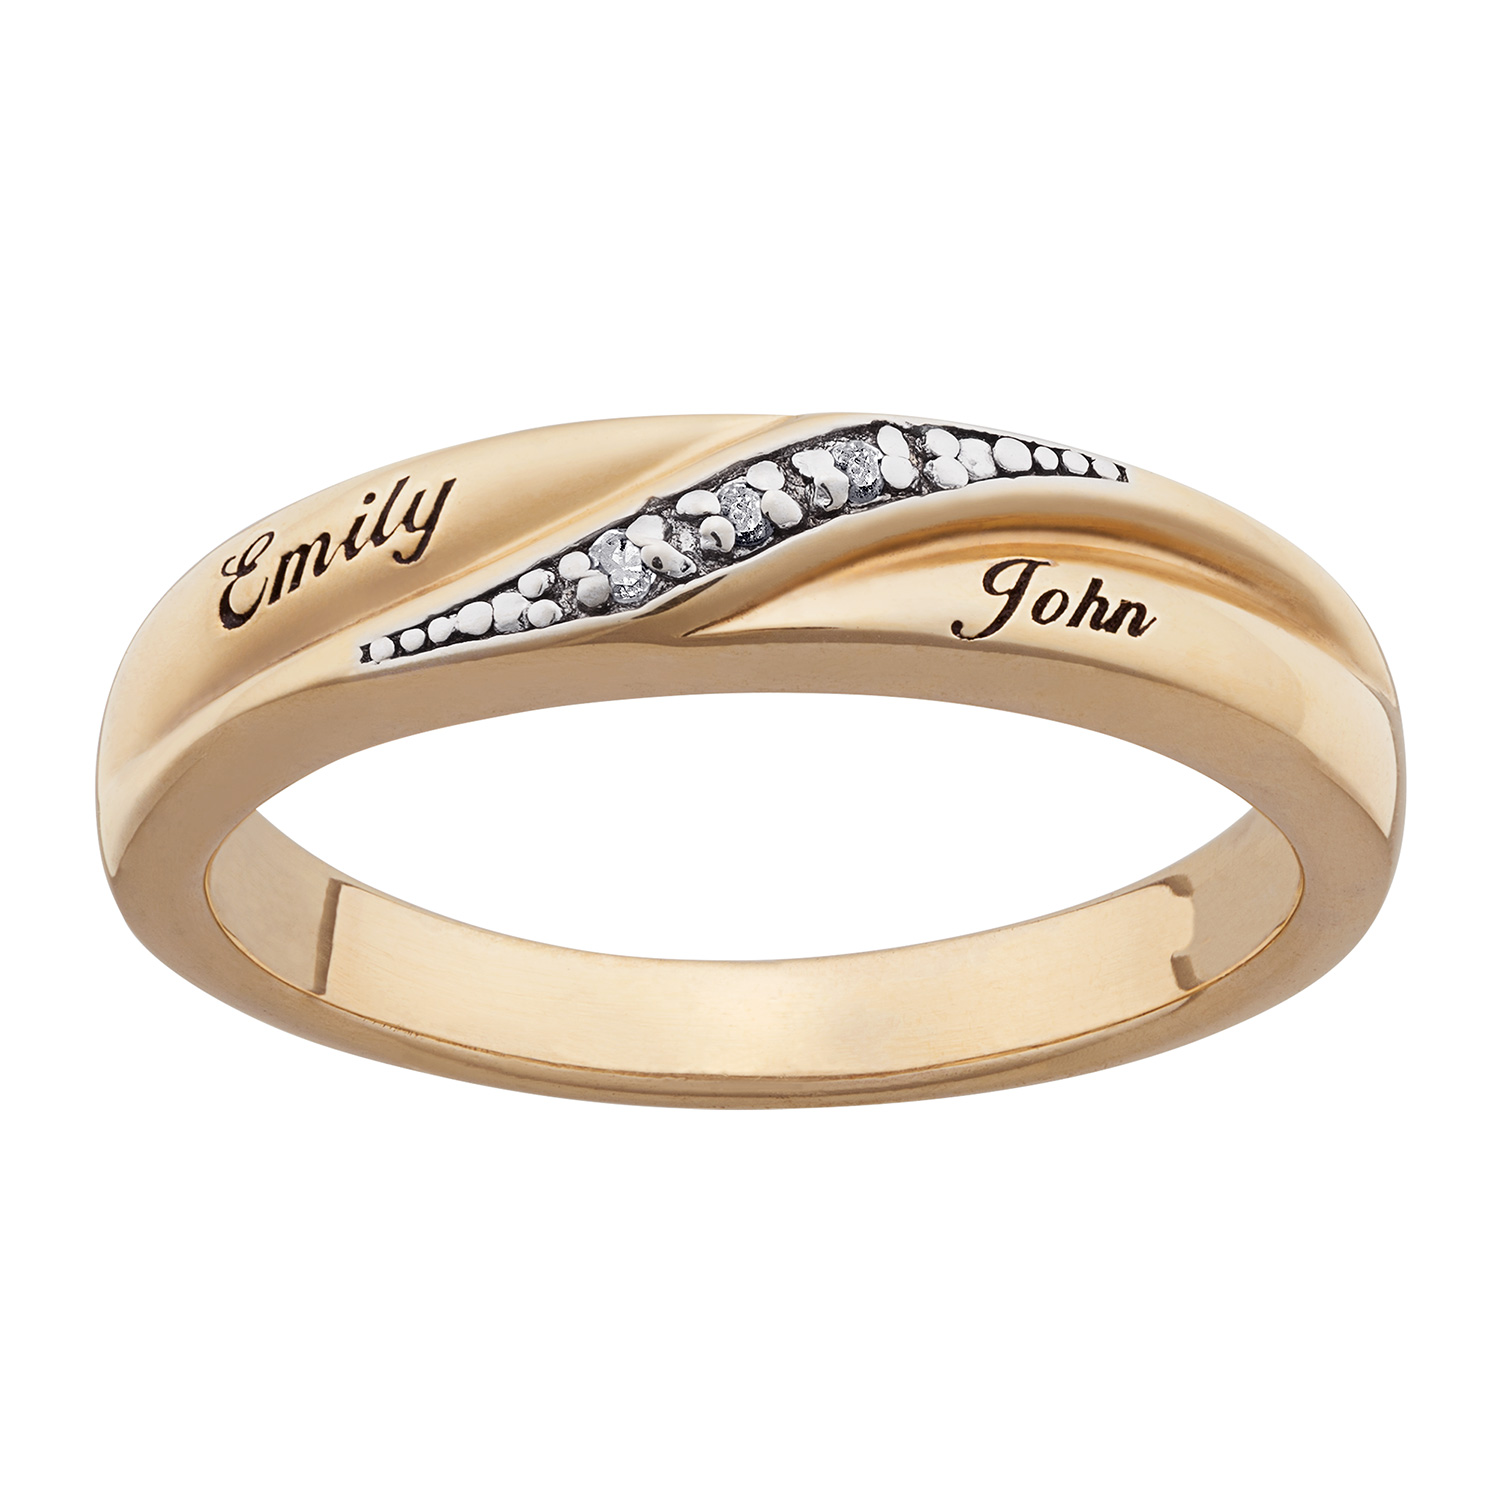 wedding rings and bands 10k gold engraved name wedding band 22366 1012